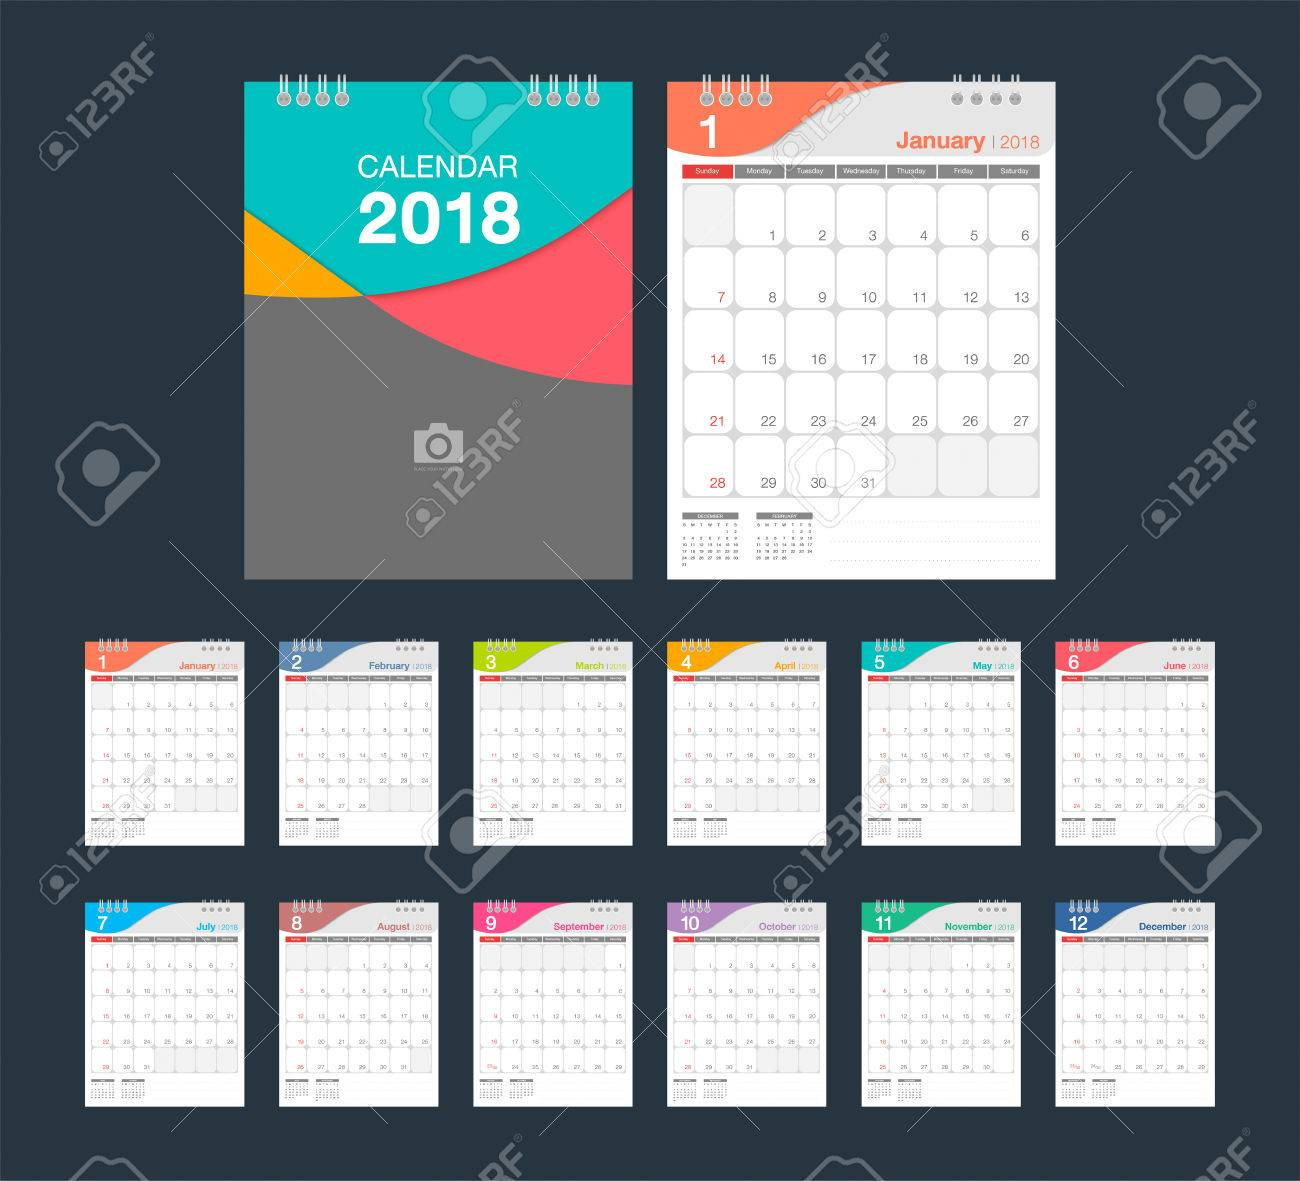 2018 calendar desk calendar modern design template with place for photo week starts sunday